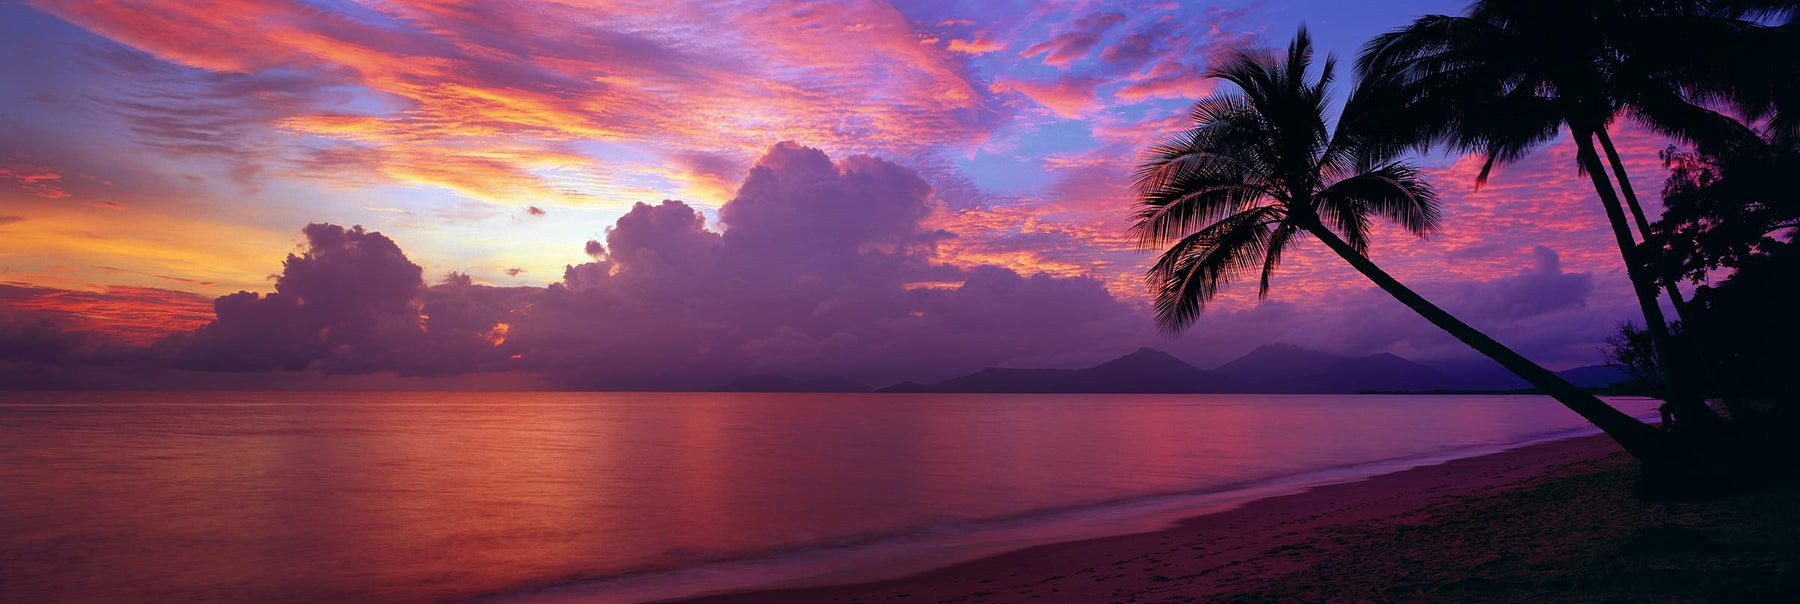 Cloudy pink and purple sunrise with palm trees leaning over the sand beach at Holloways Australia